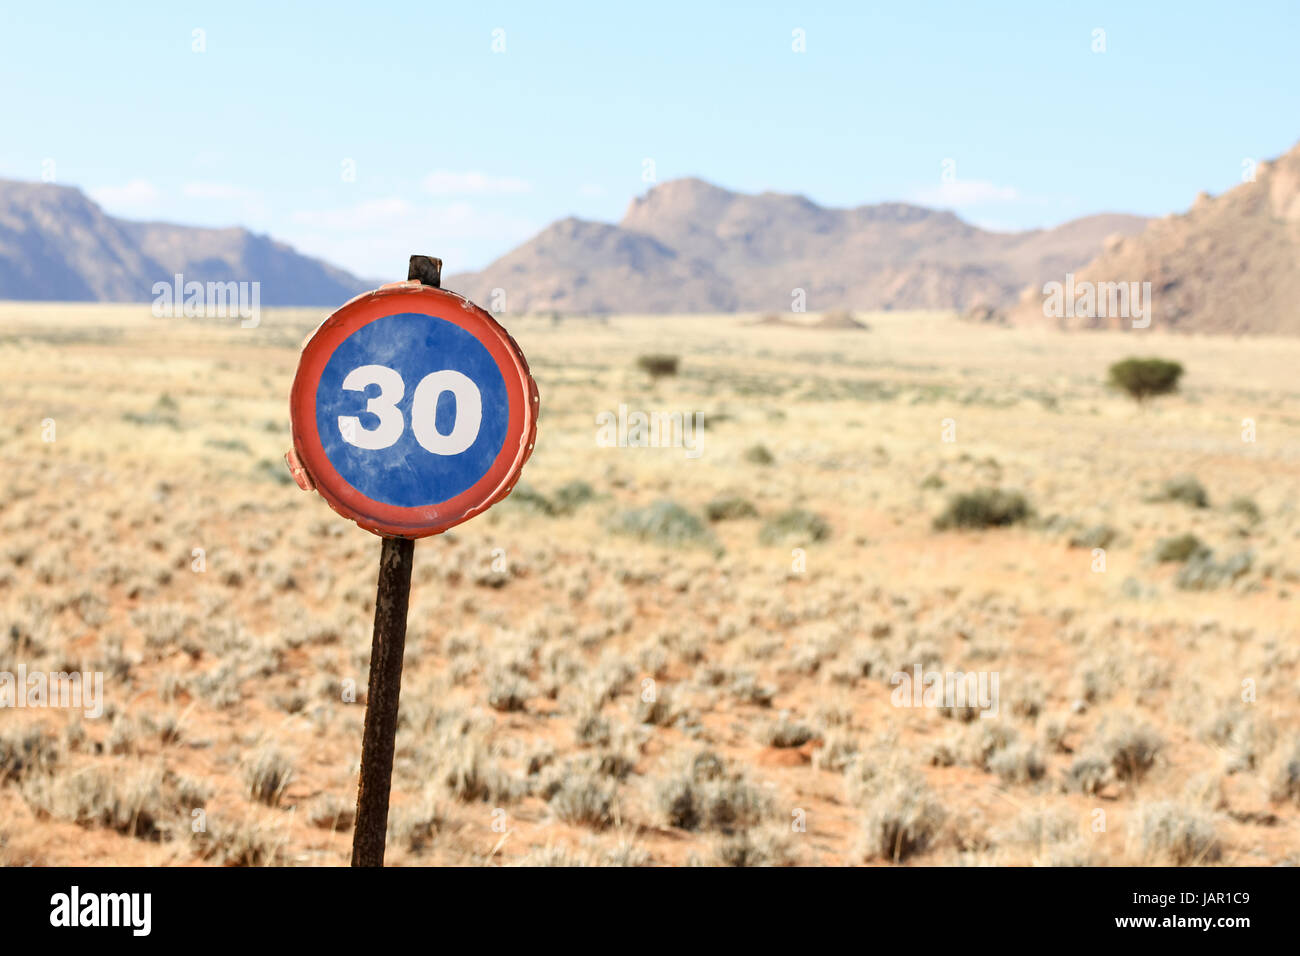 Old speed road sign in desert and mountain landscape Stock Photo